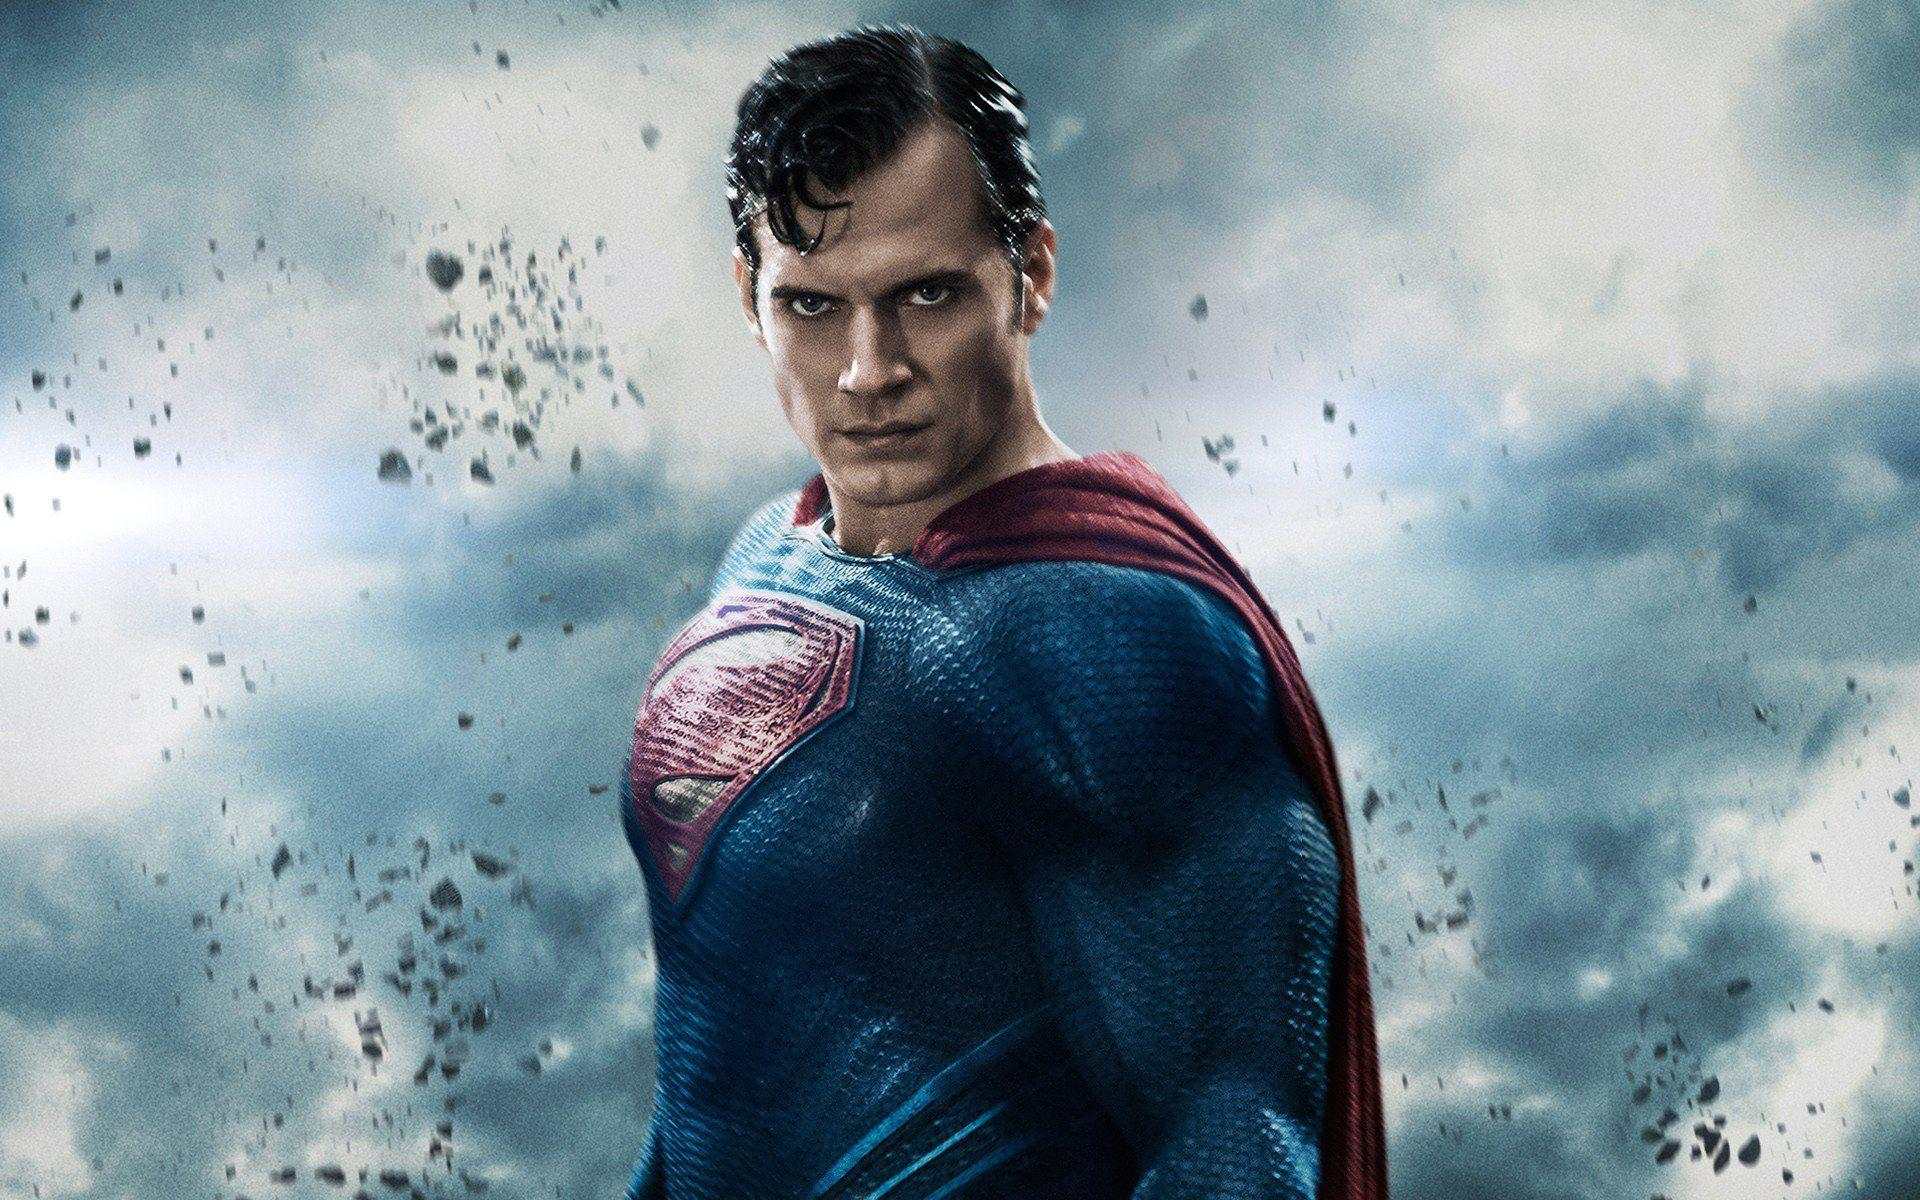 superman hd wallpapers, hd wallpapers of superman